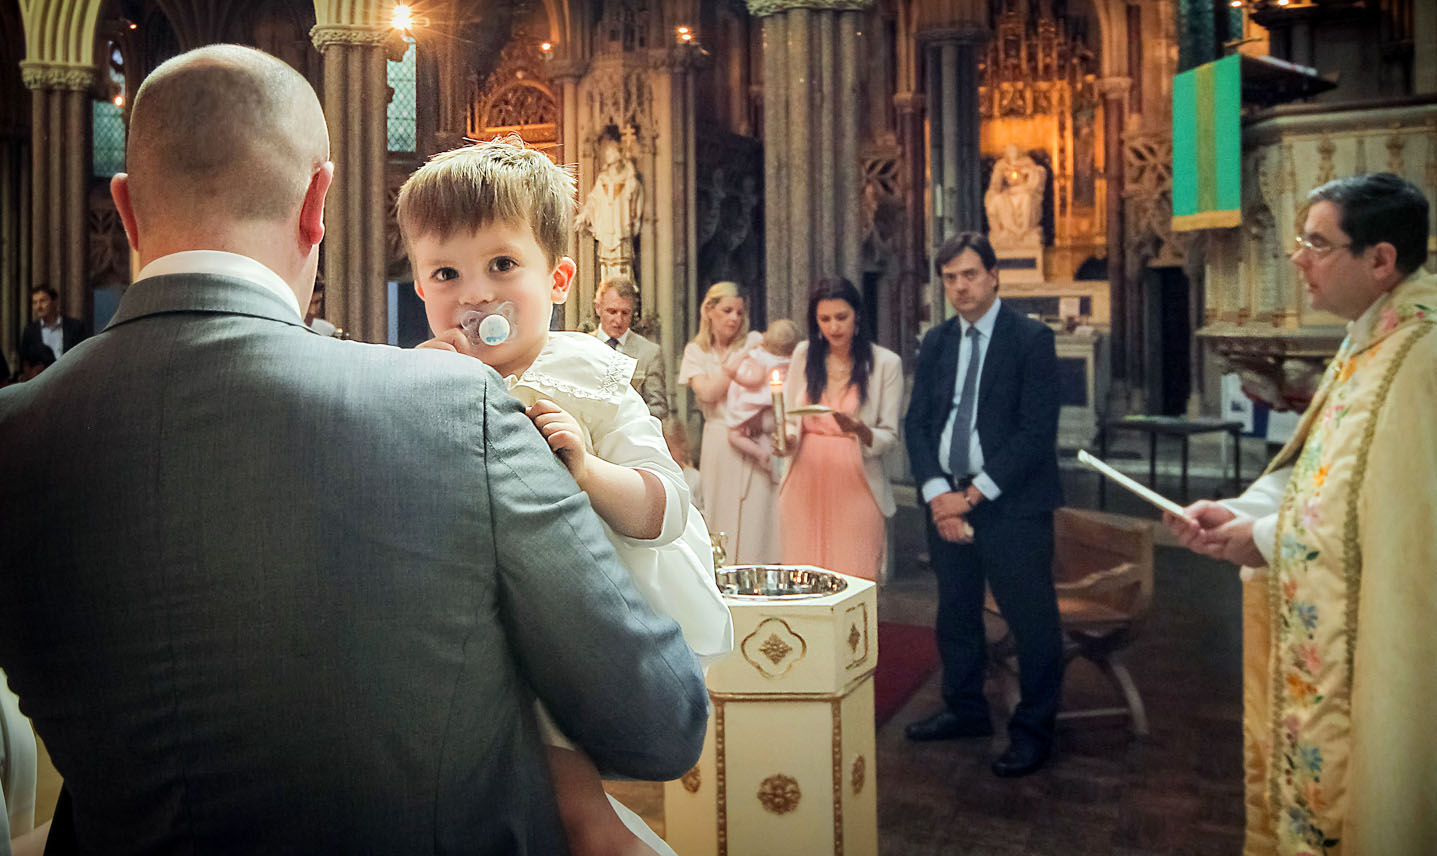 Christening photographer captures the catechism blessings during the baptism